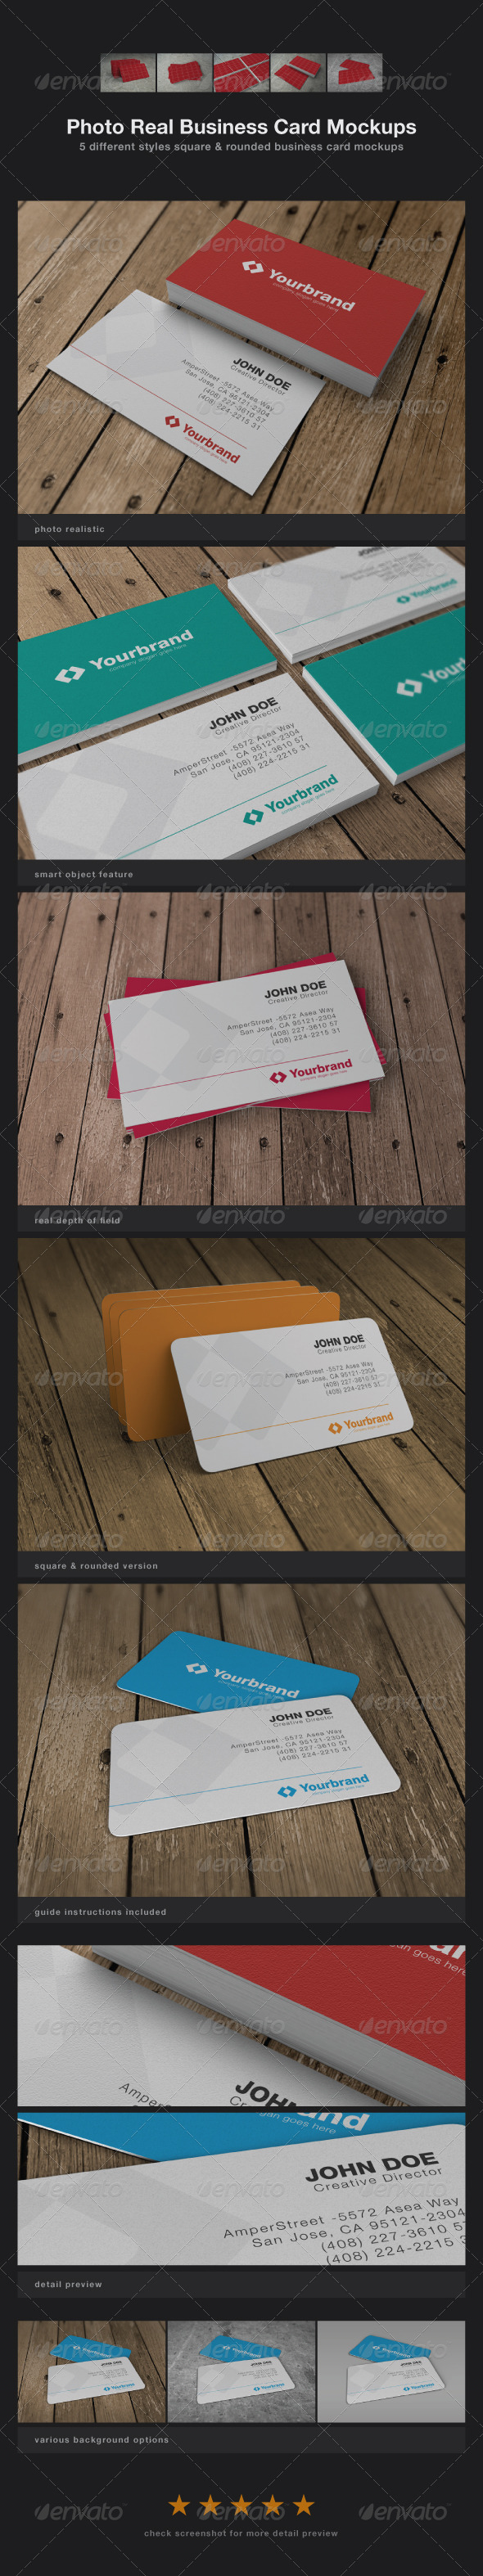 GraphicRiver Photo Real Business Card Mockups 3130057